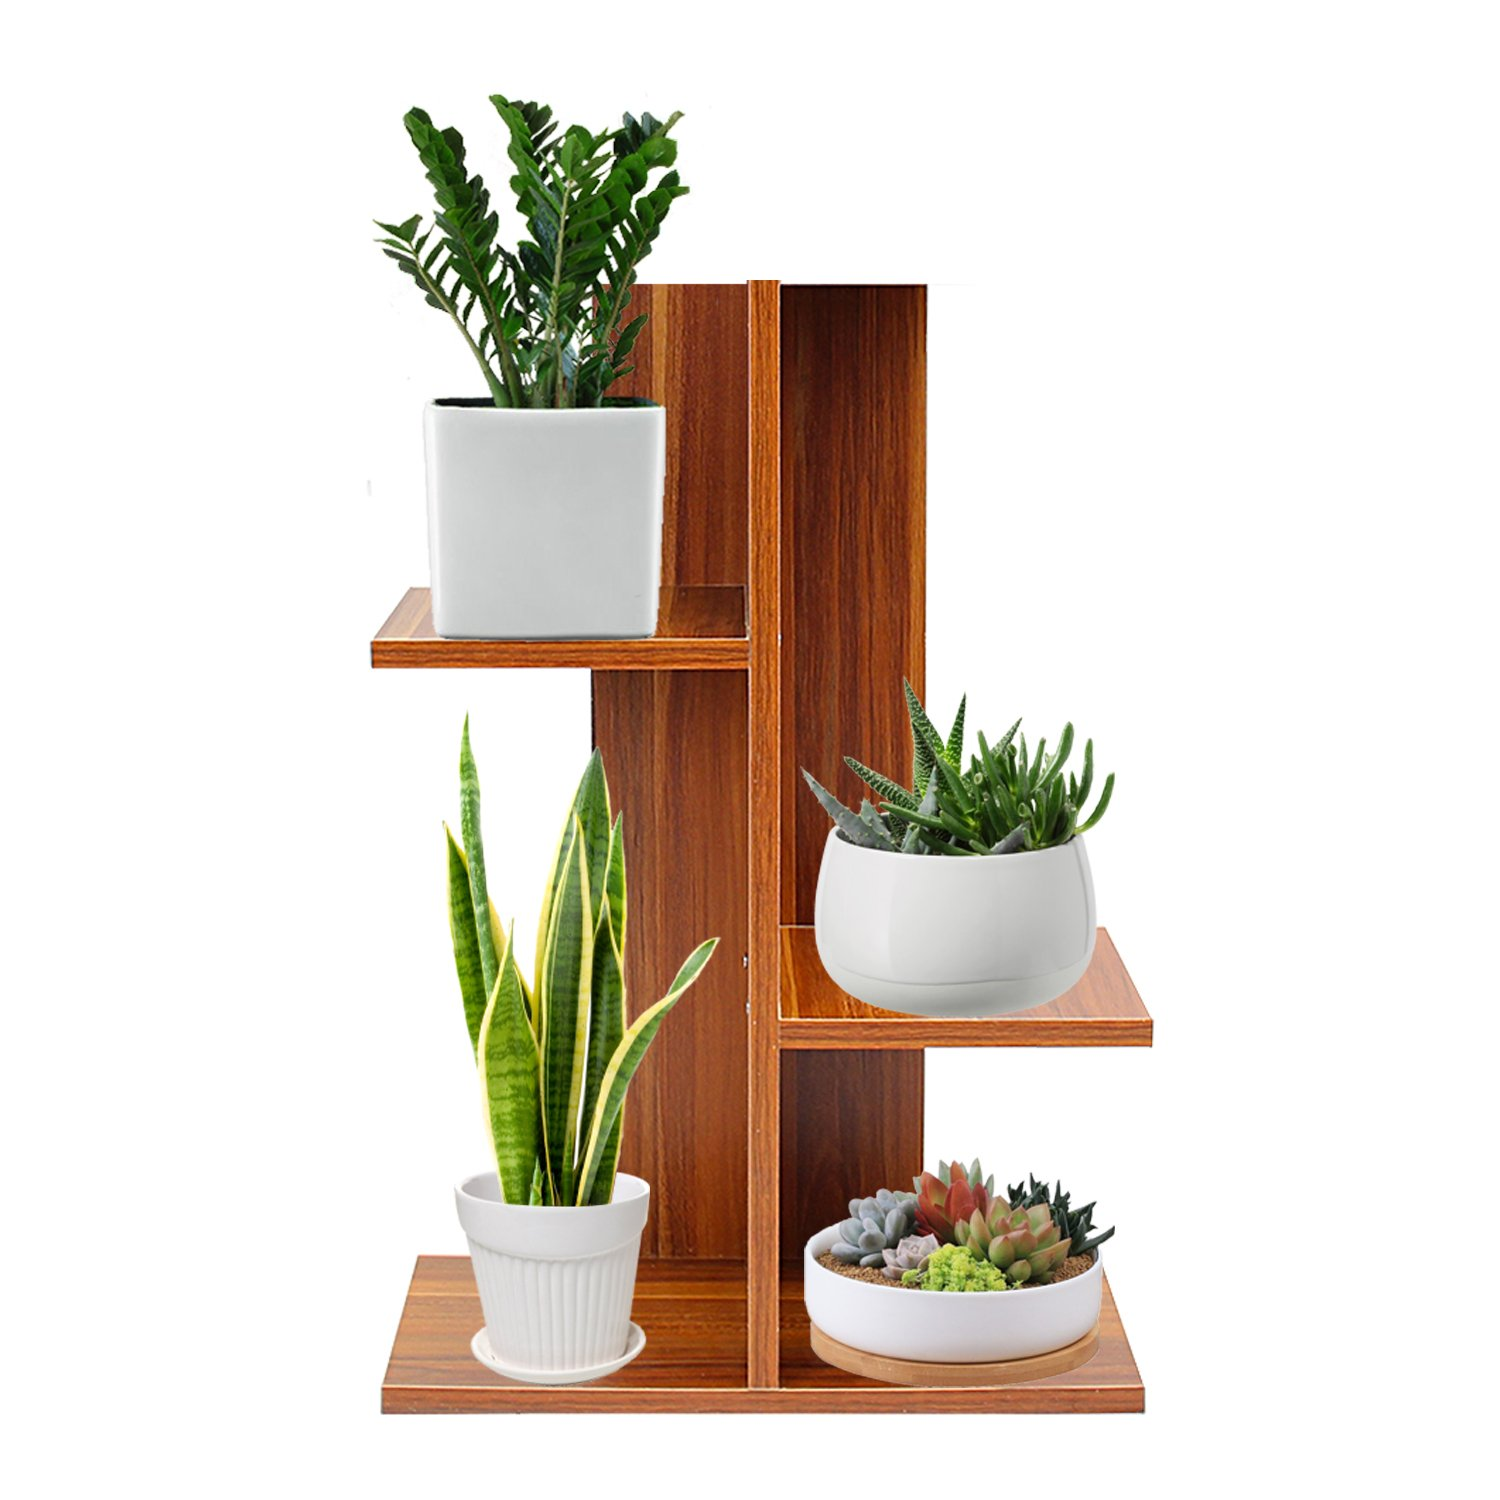 Jerry & Maggie - 4 Tier Bookcase Rustic Bookshelf Plants Flowers Shelf Display Storage Wood Closet Organizer Multi Units Deluxe Free Stand Shelving Shelves Rack Curve Cabinet - Dark Natural Wood Tone by Jerry & Maggie